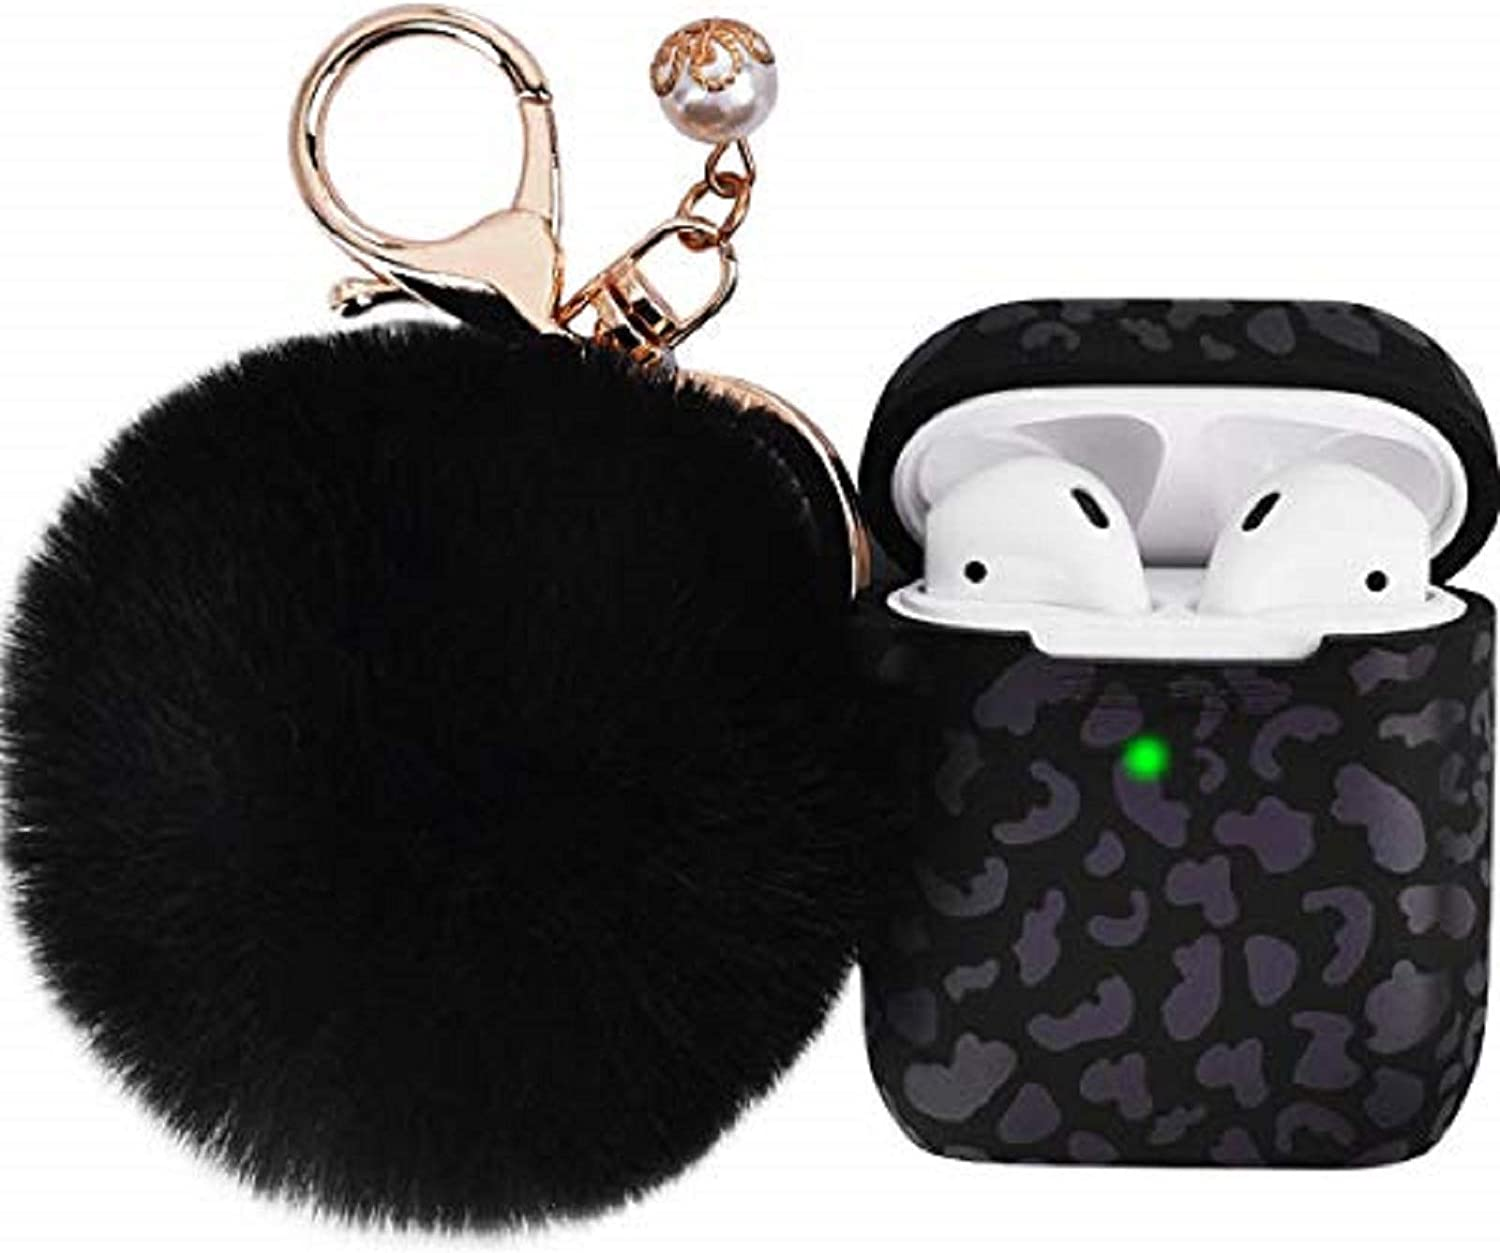 Leopard Airpods Case for Women, Filoto Airpod Case Cover for Apple AirPods 2&1 Charging Case, Cute Cheetah Print Silicone Soft Cases Accessories Keychain/Pompom/Strap for Girls (Leopard of The Night)